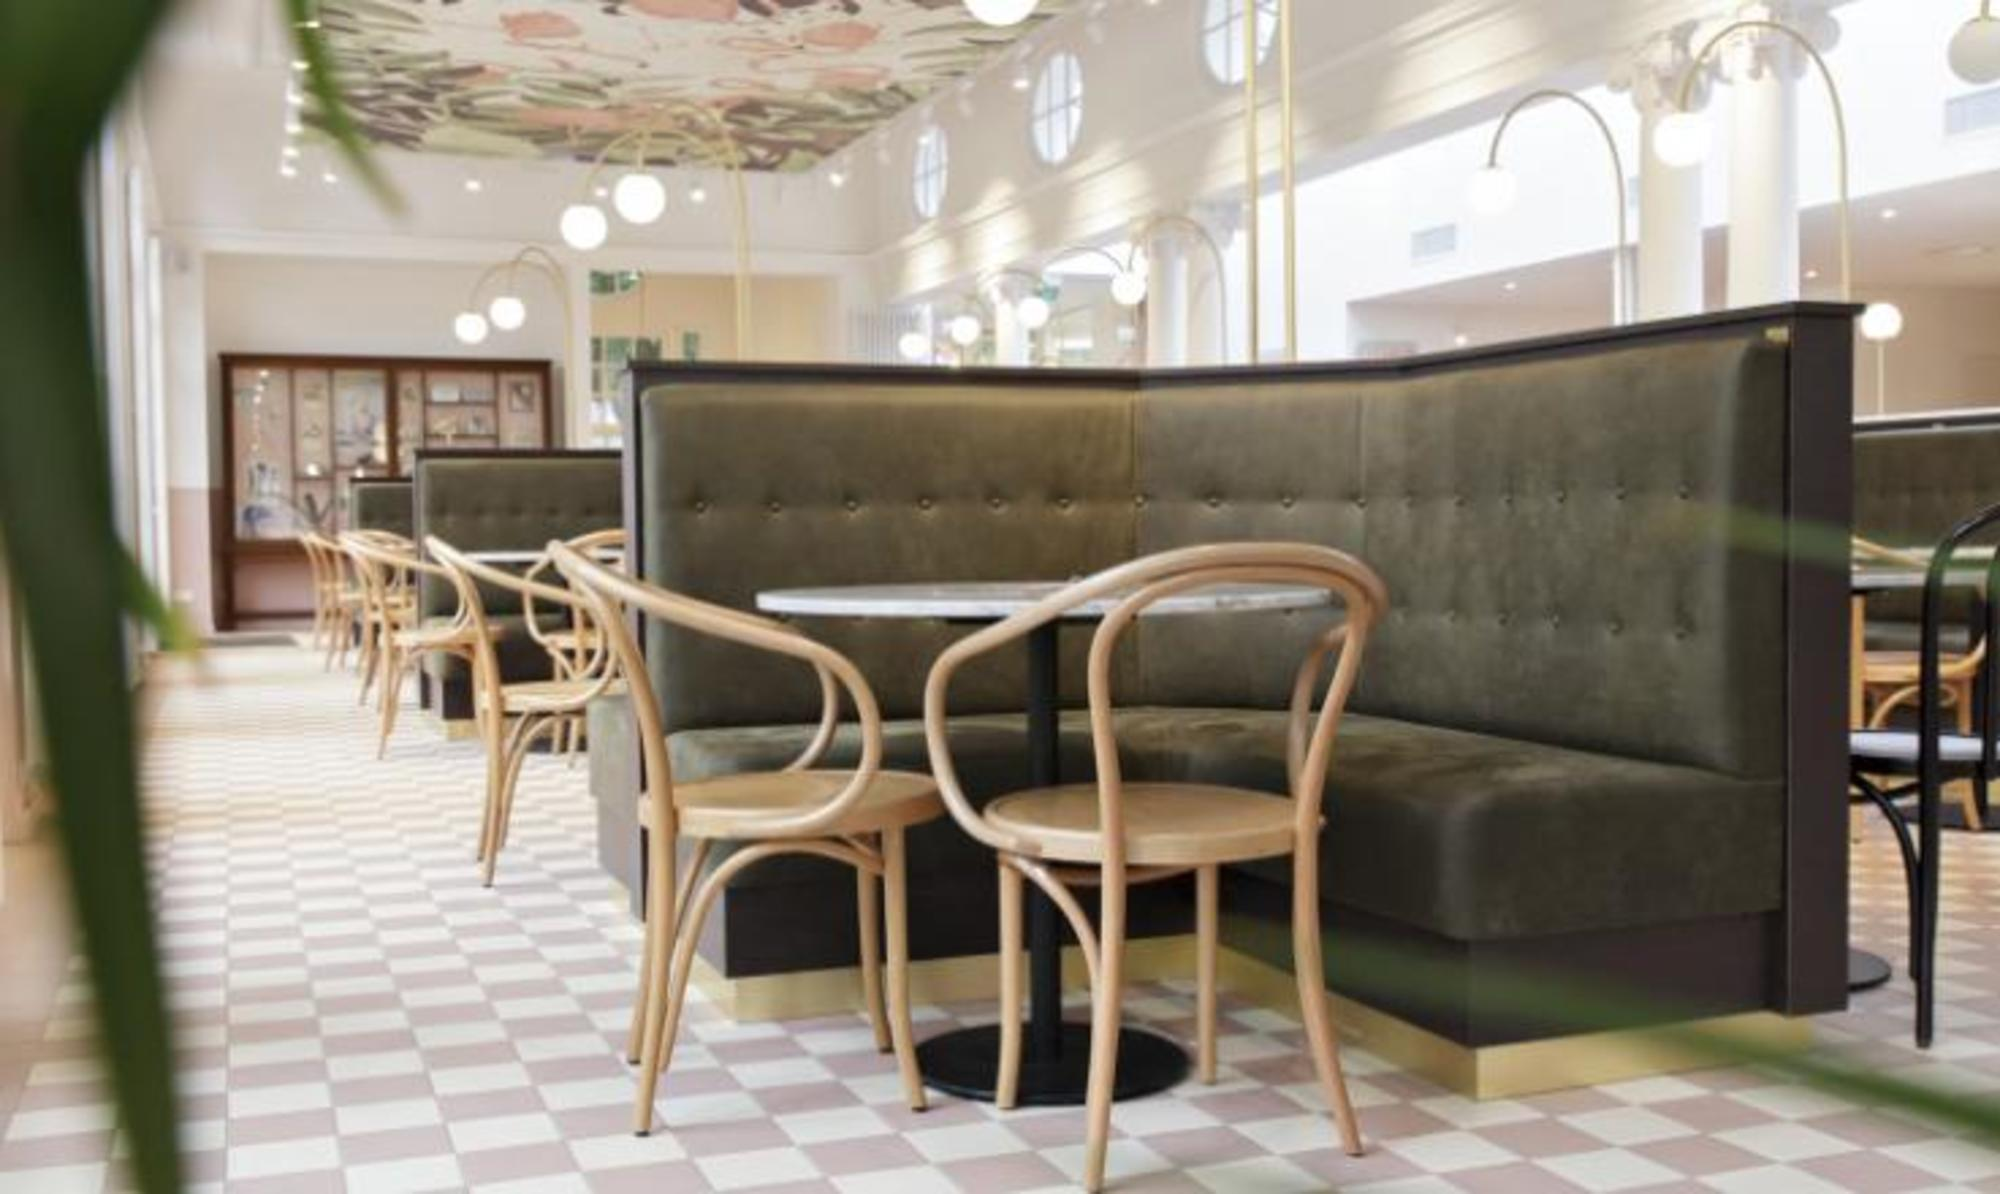 Flamingo Grandcafé zoo Antwerpen 8 Office architects TOPCER 15x15 6616 white + 6619 pink